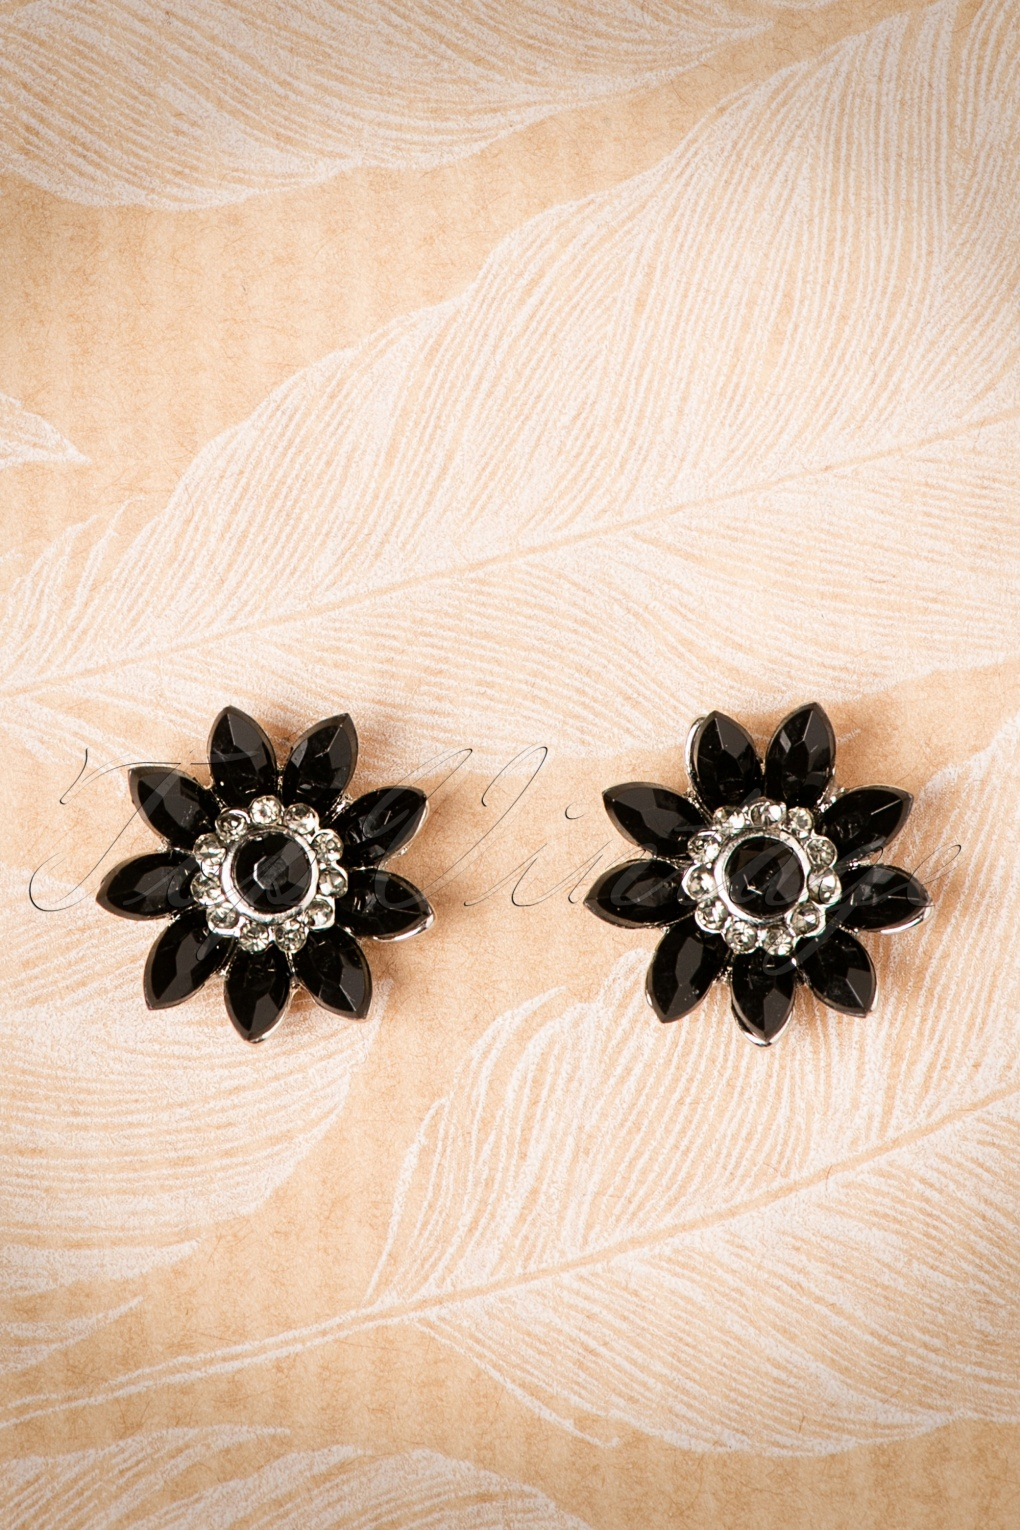 1950s Costume Jewelry 50s Audrey Jet Flower Earrings in Black £12.99 AT vintagedancer.com